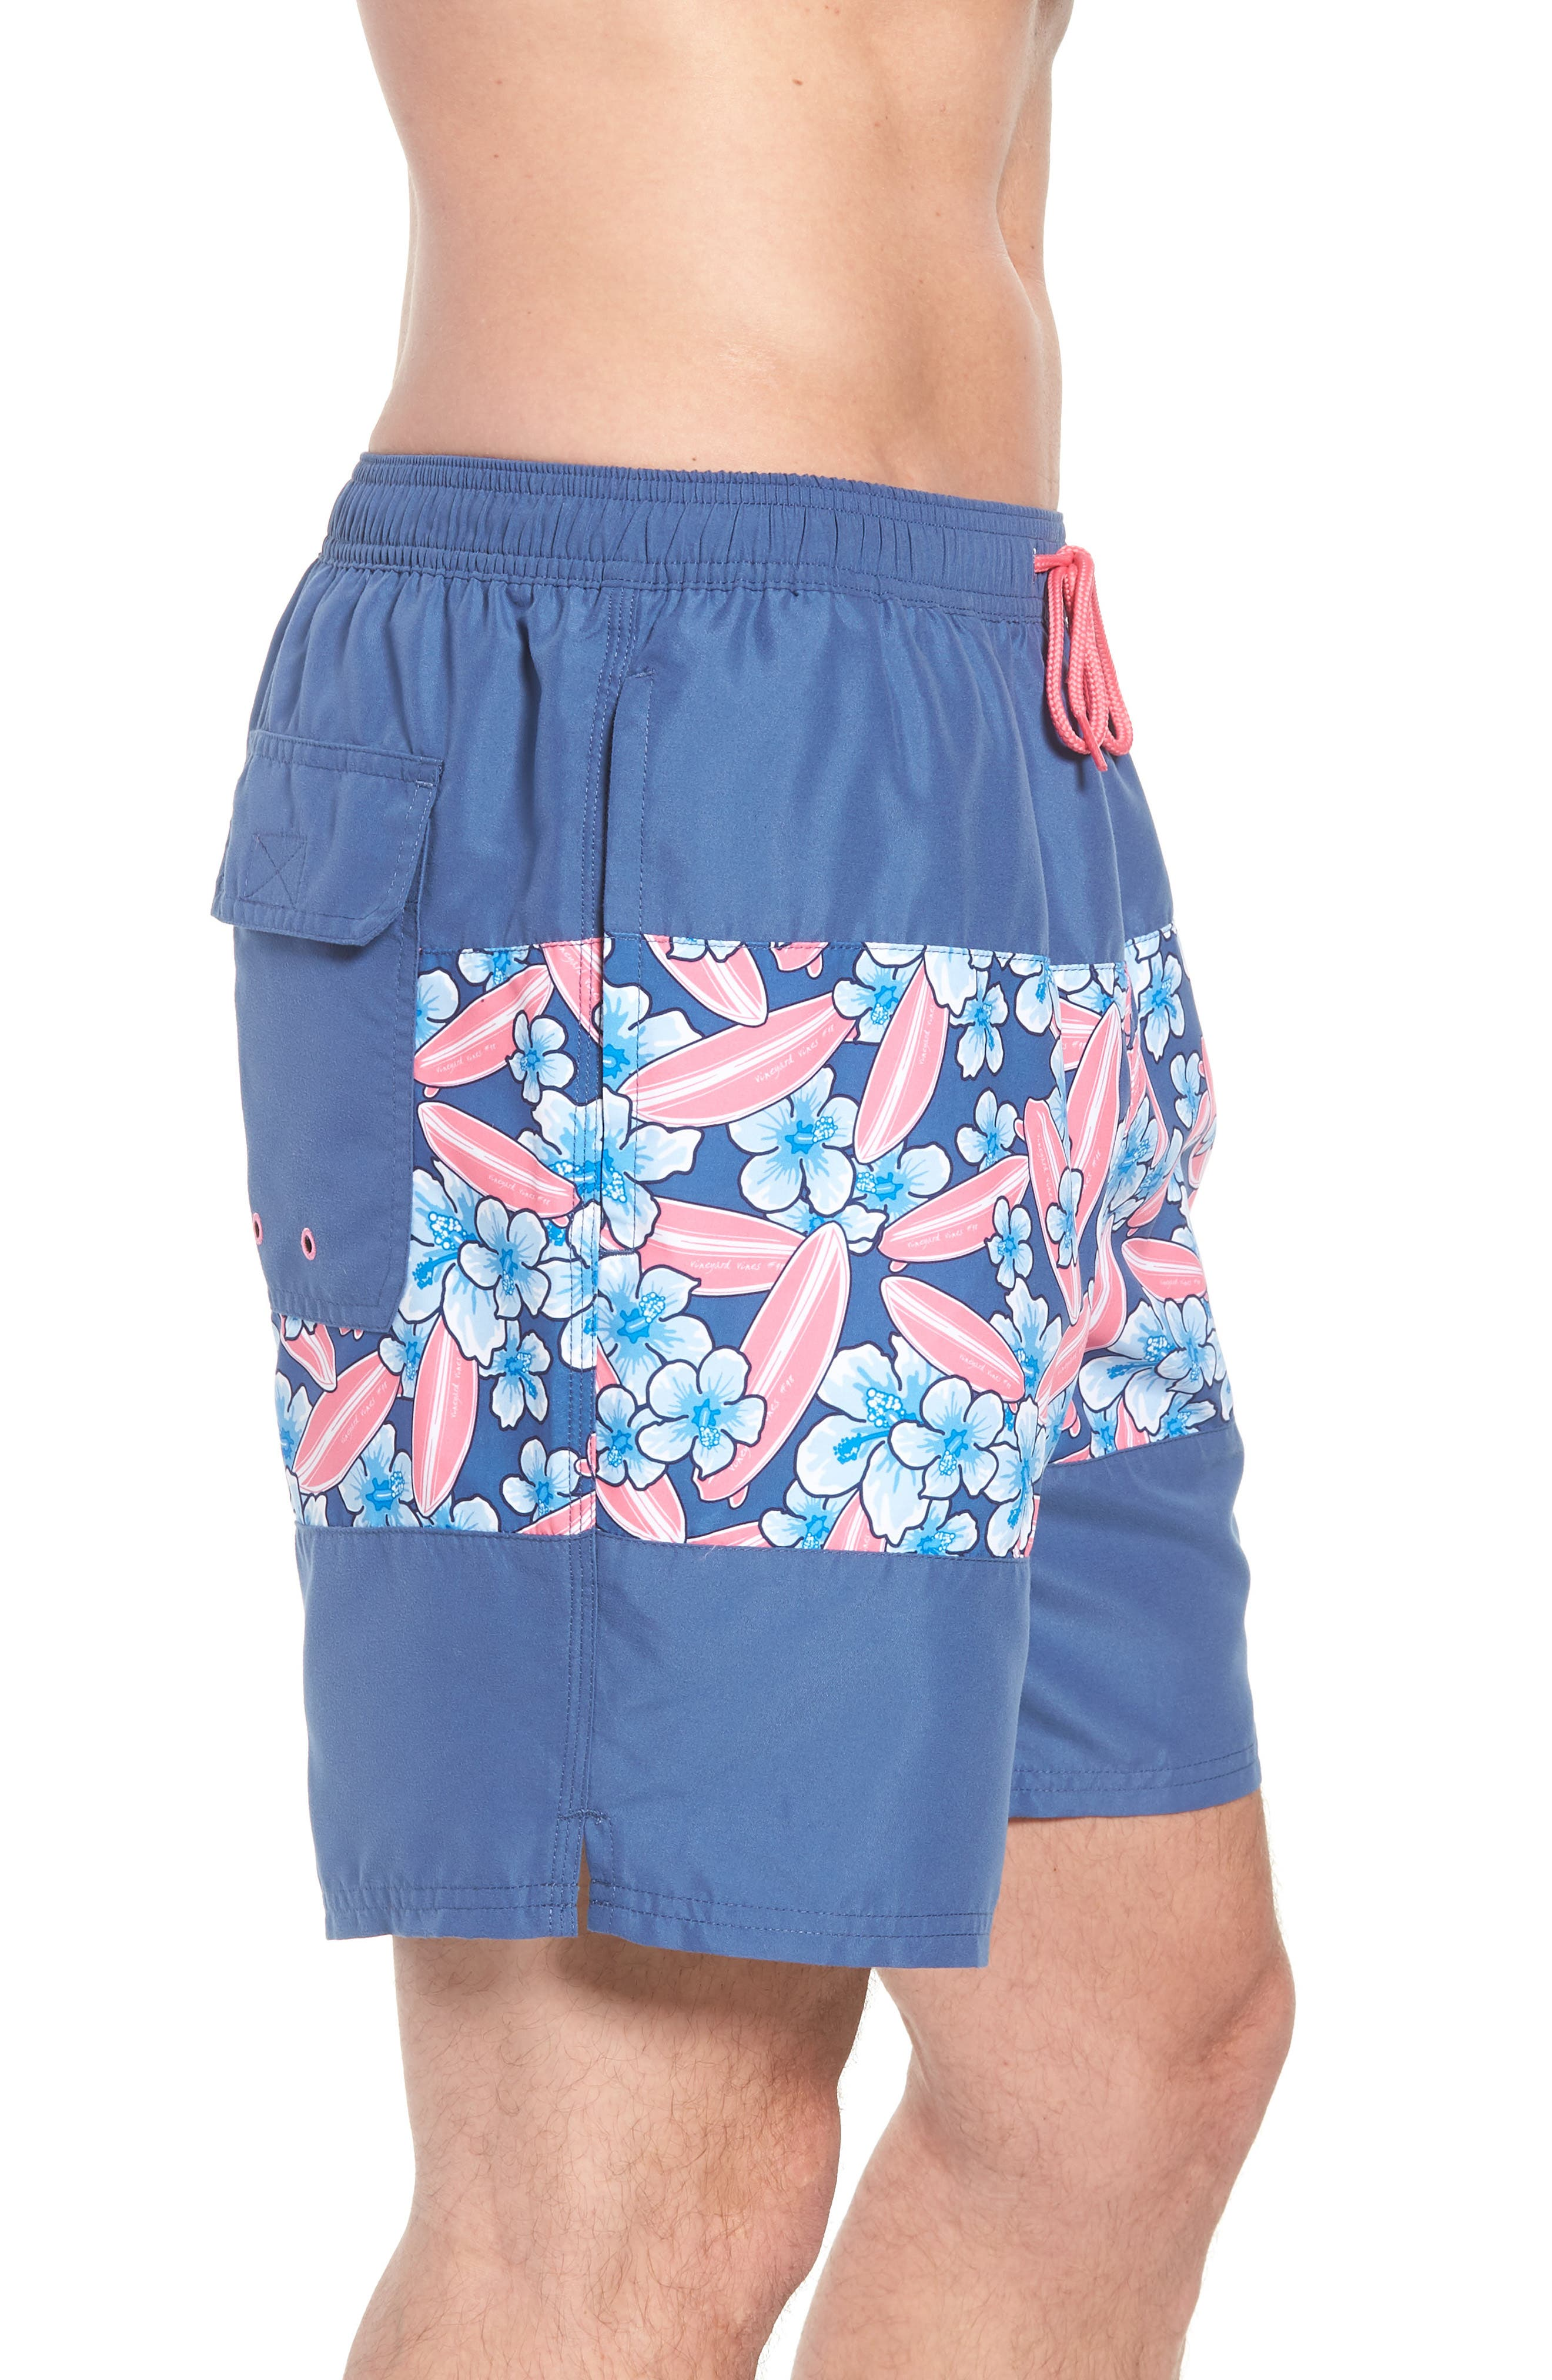 Chappy Pieced Surfboard Swim Trunks,                             Alternate thumbnail 3, color,                             461